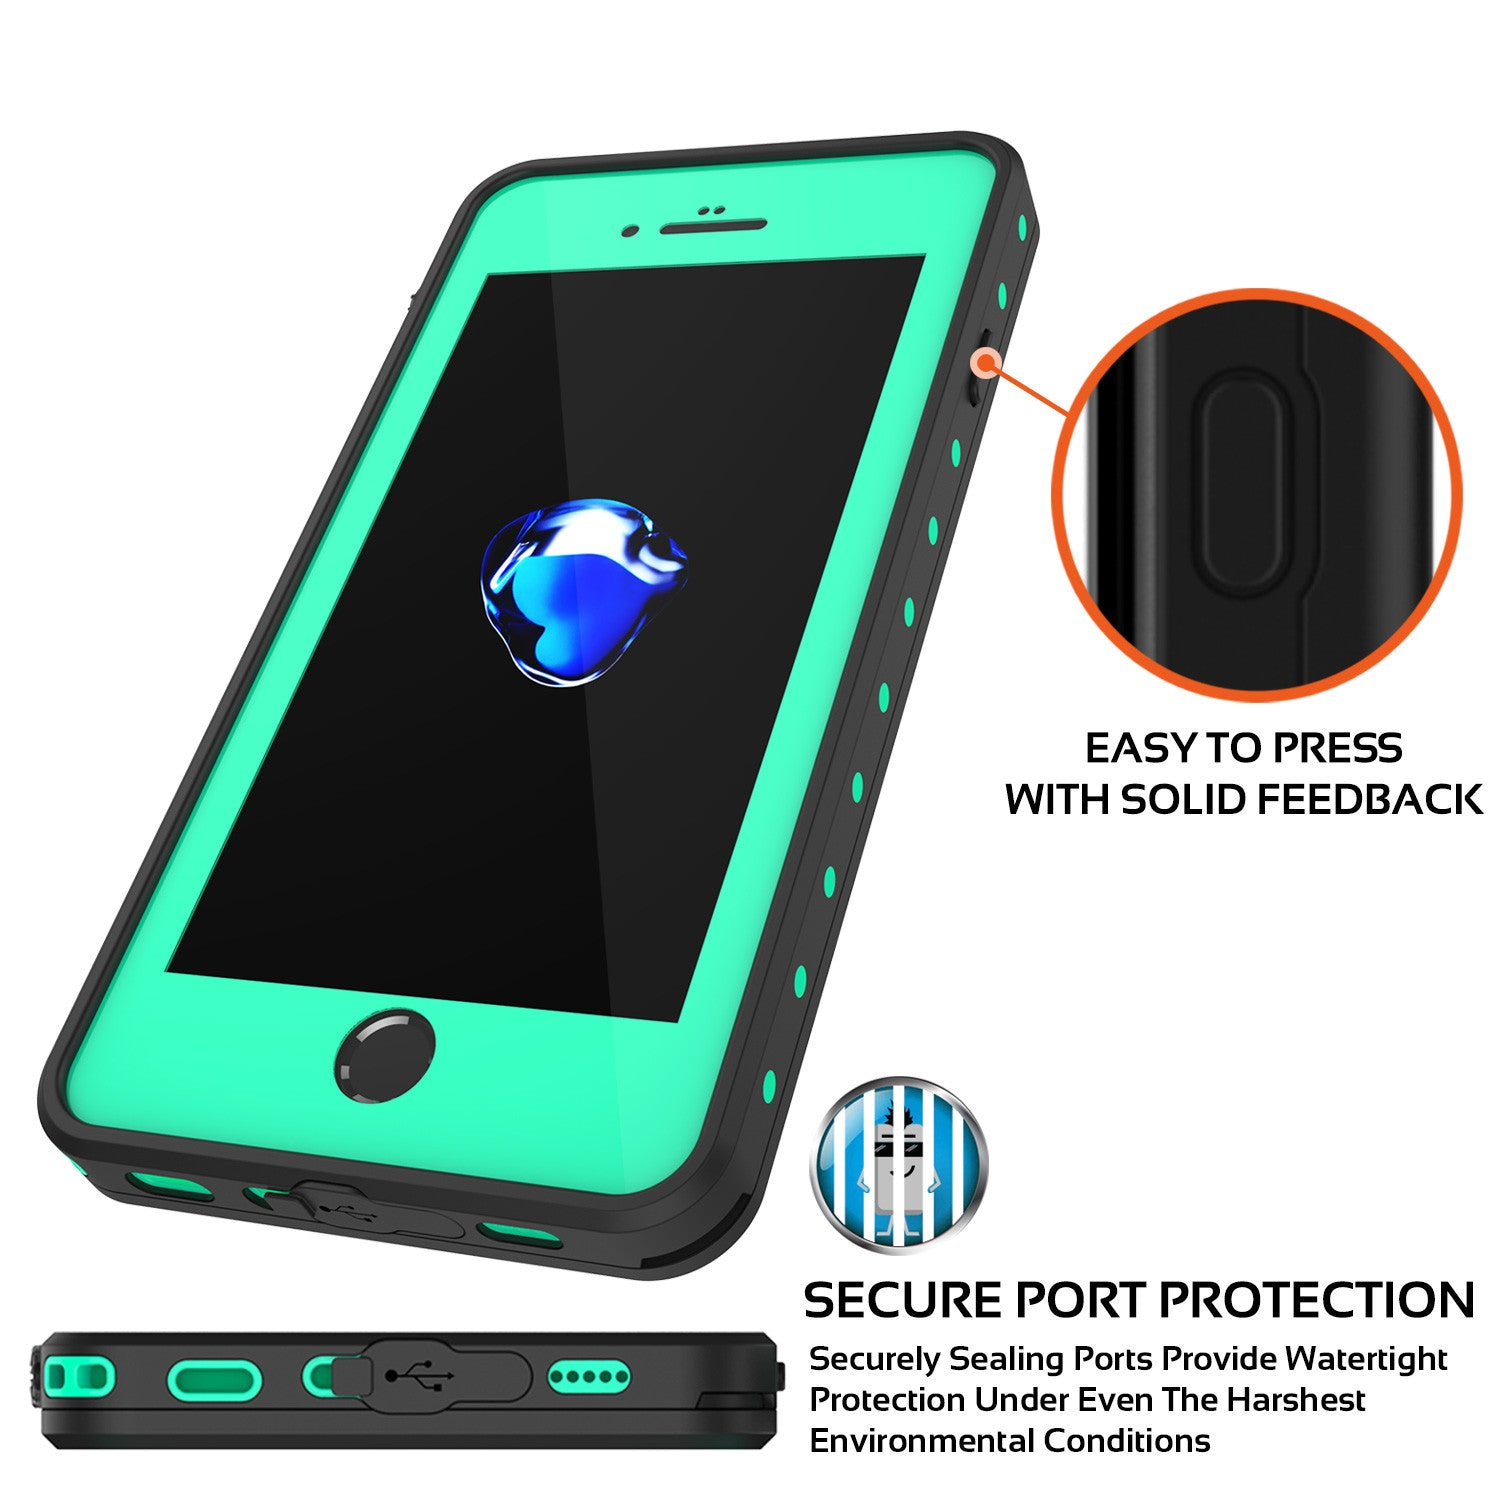 iPhone 7+ Plus Waterproof IP68 Case, Punkcase [Teal] [StudStar Series] [Slim Fit] [Dirtproof]